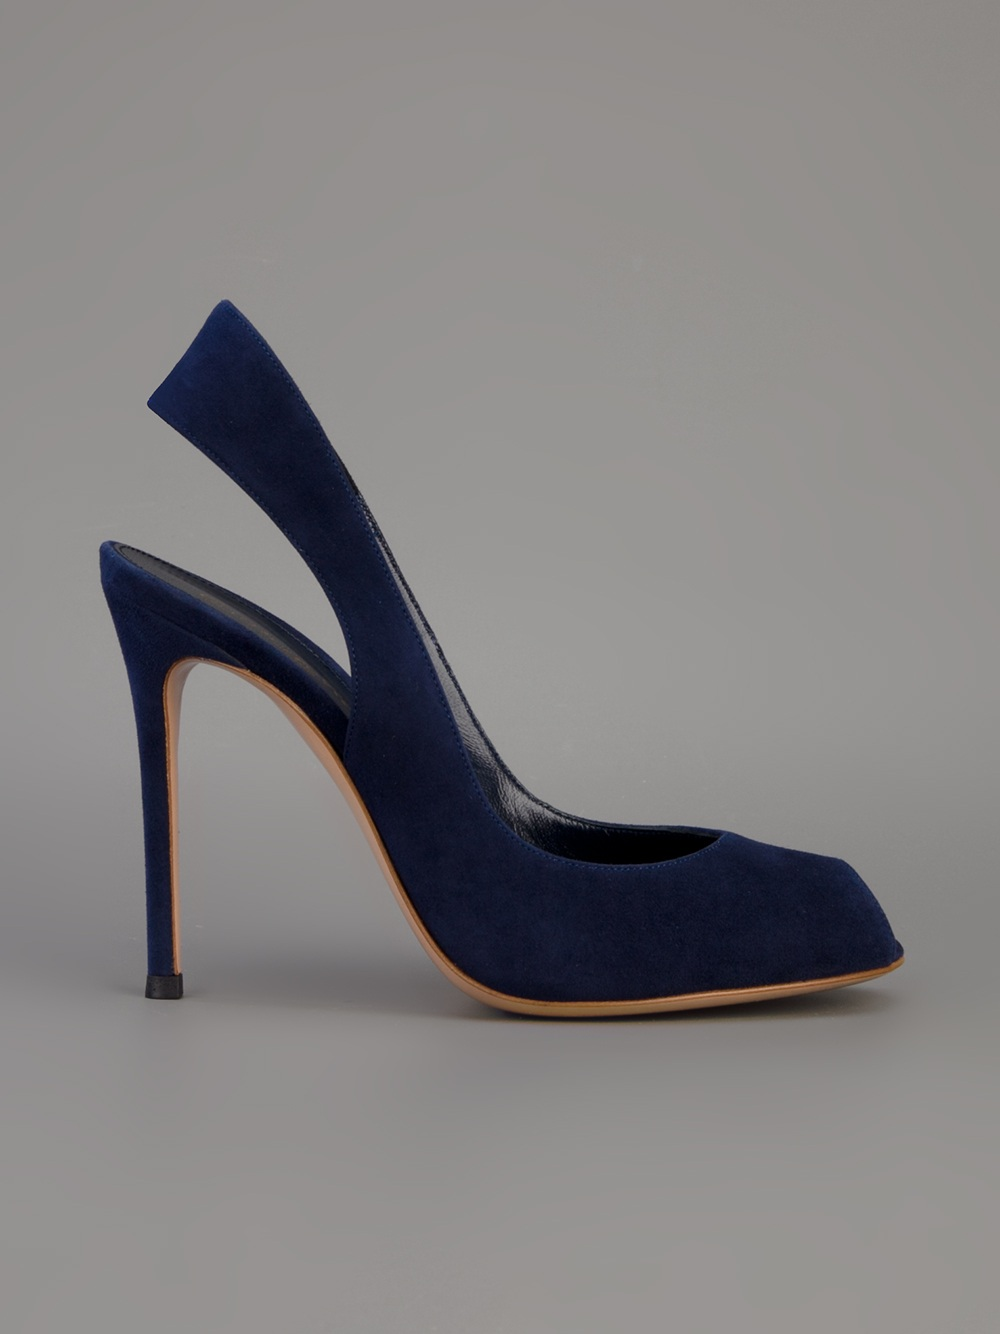 Navy Blue Heels For Women - Is Heel